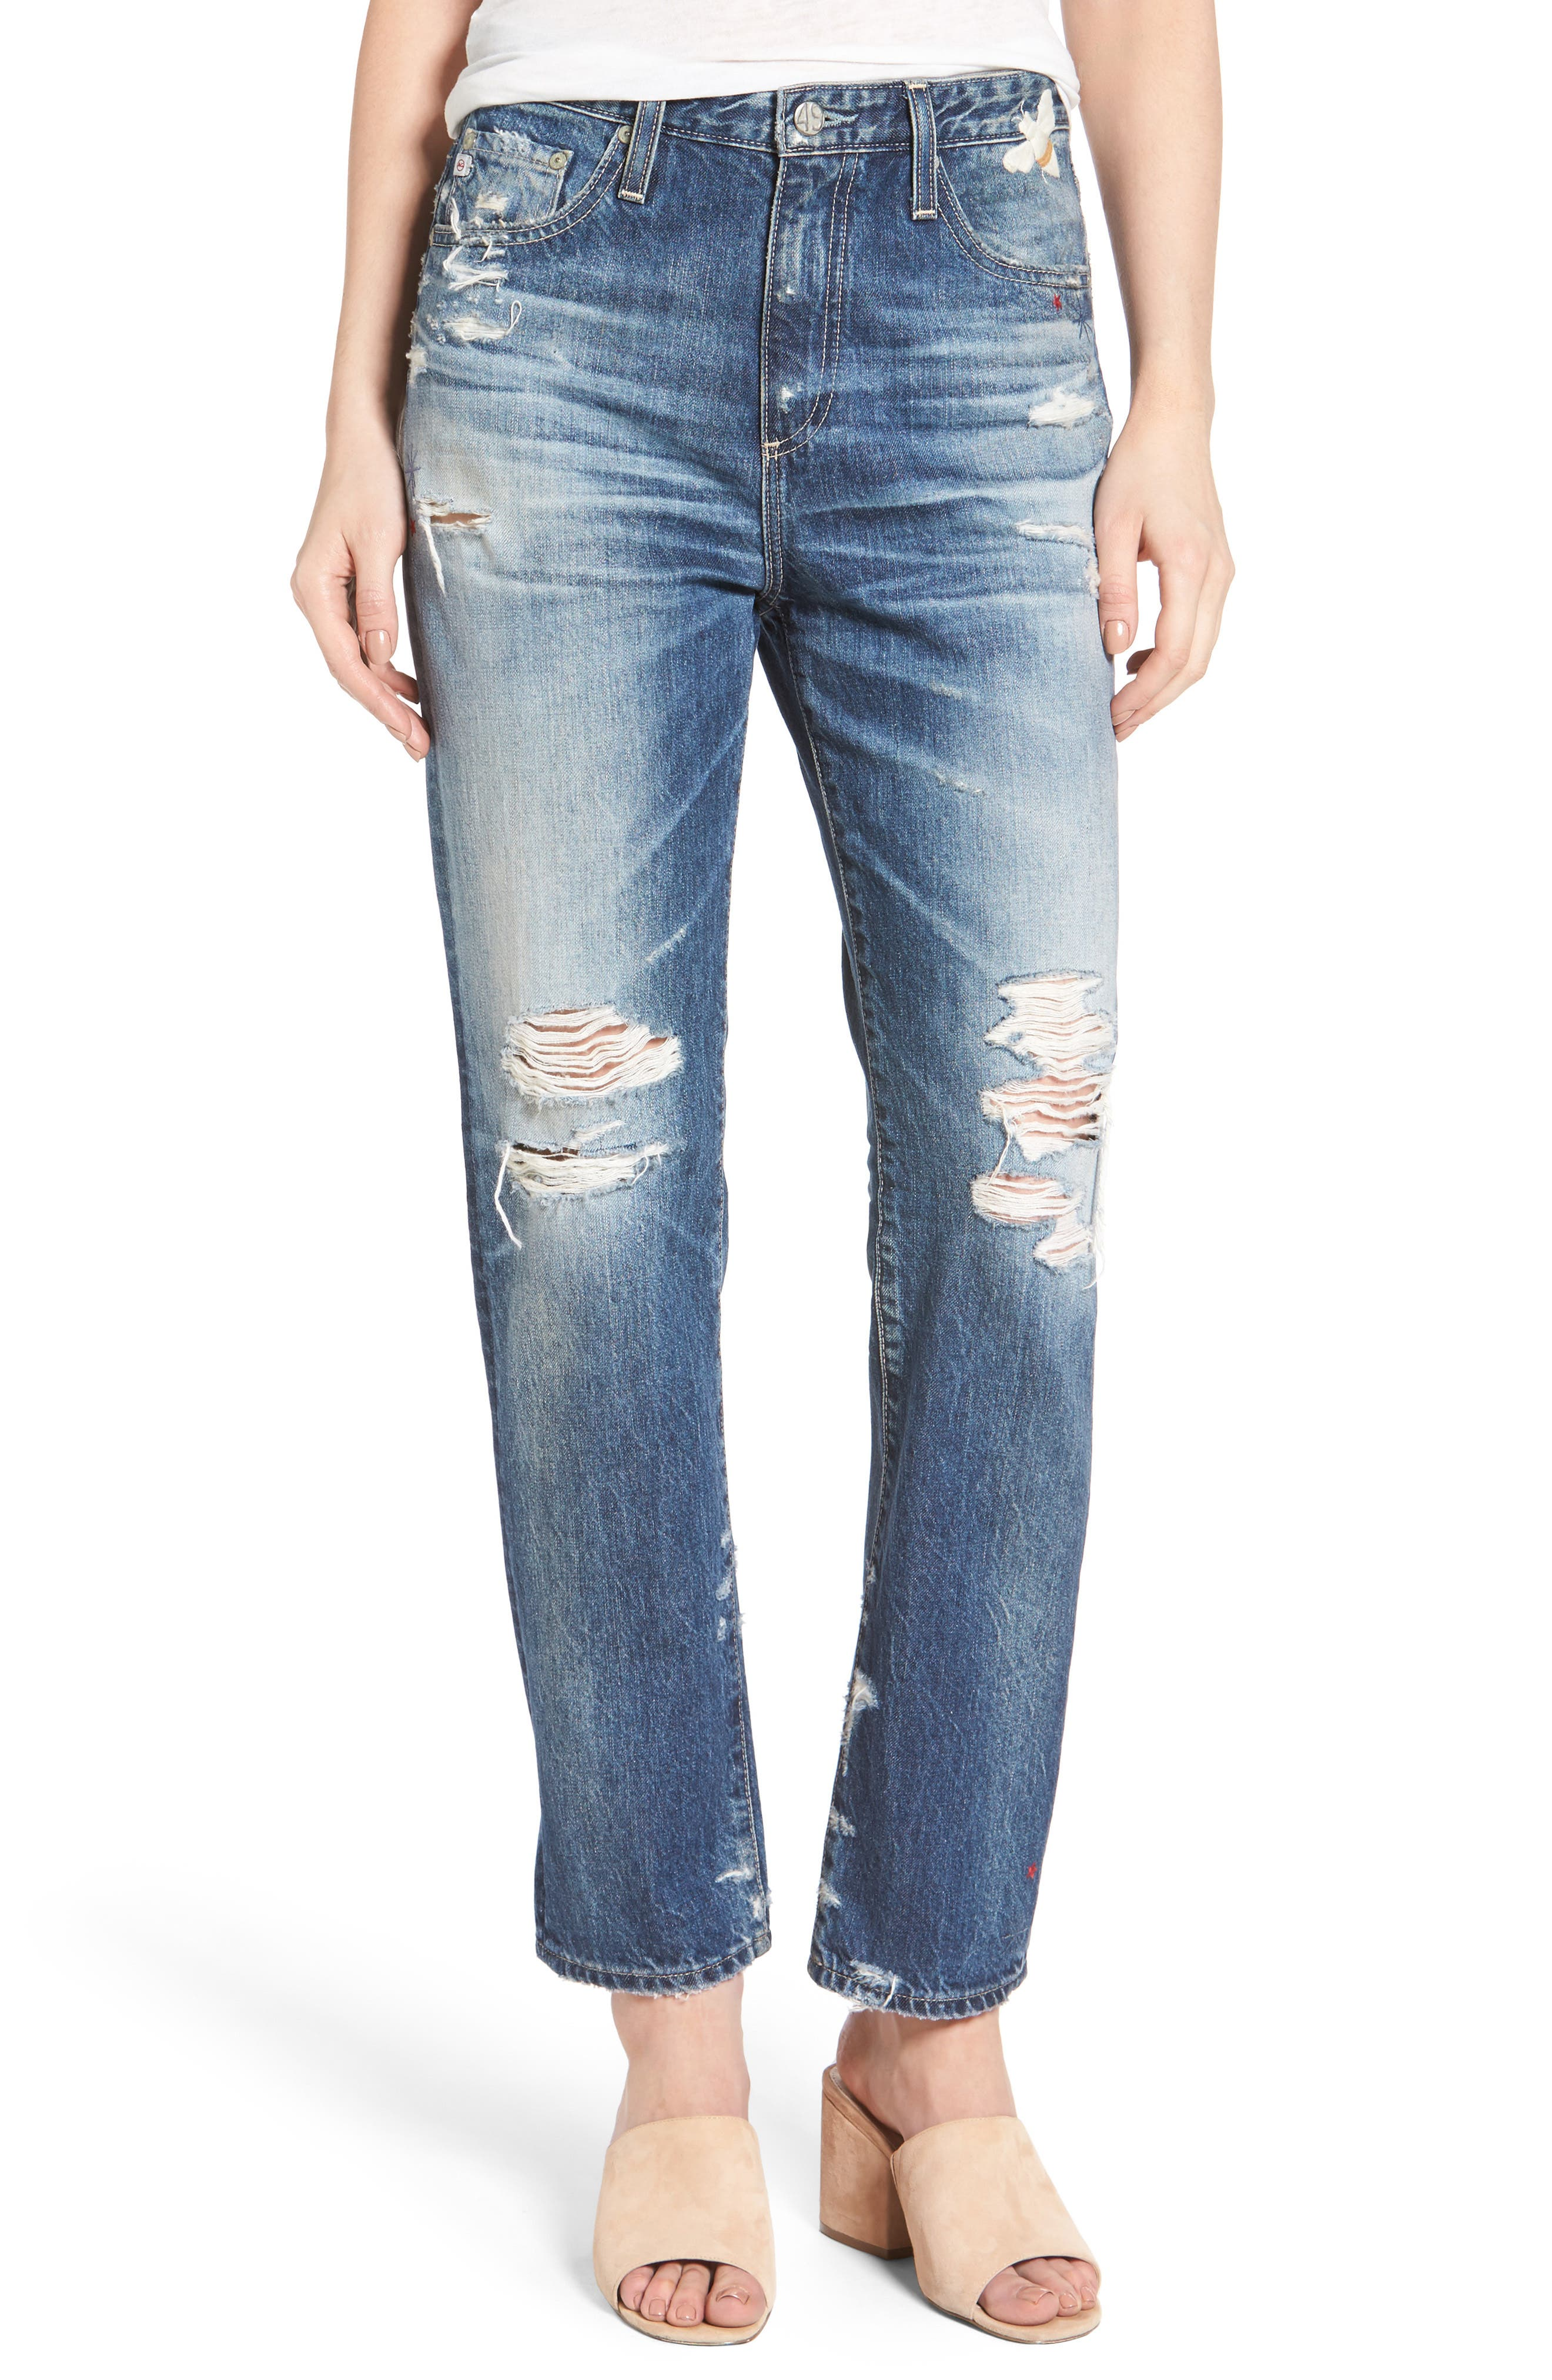 The Phoebe High Waist Straight Leg Jeans,                         Main,                         color, 23 Years Woven Dream